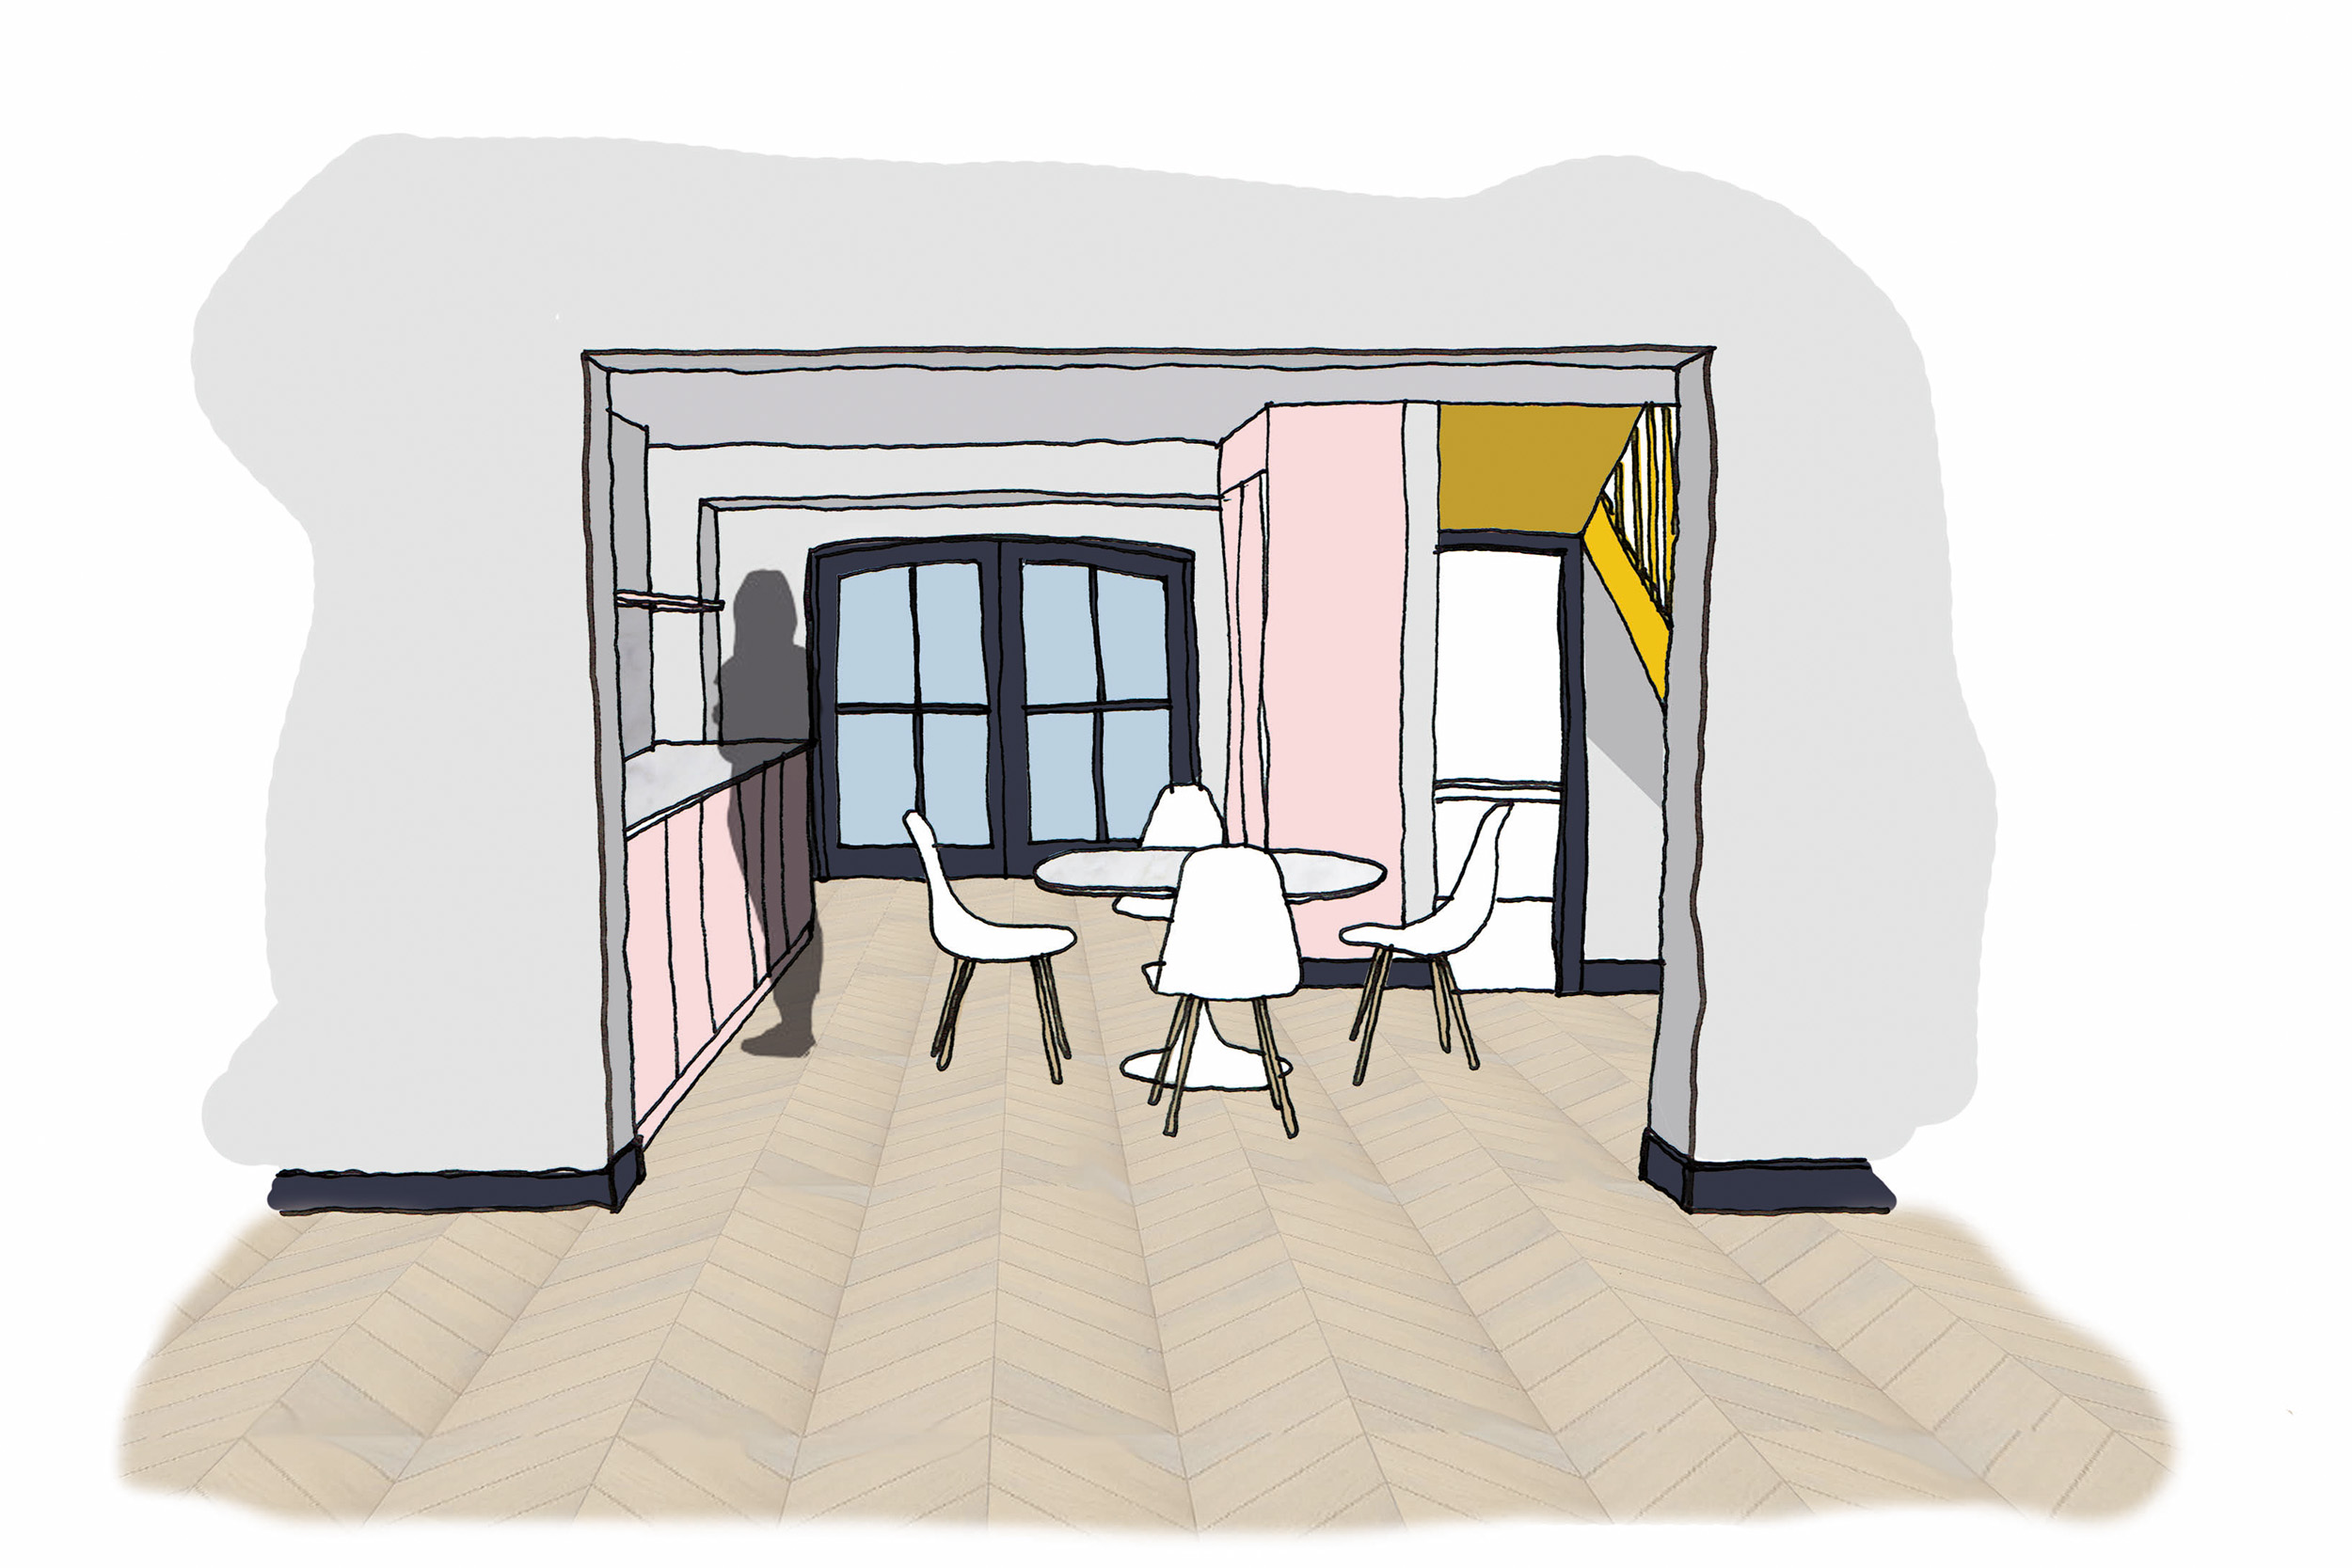 Proposed Living Space